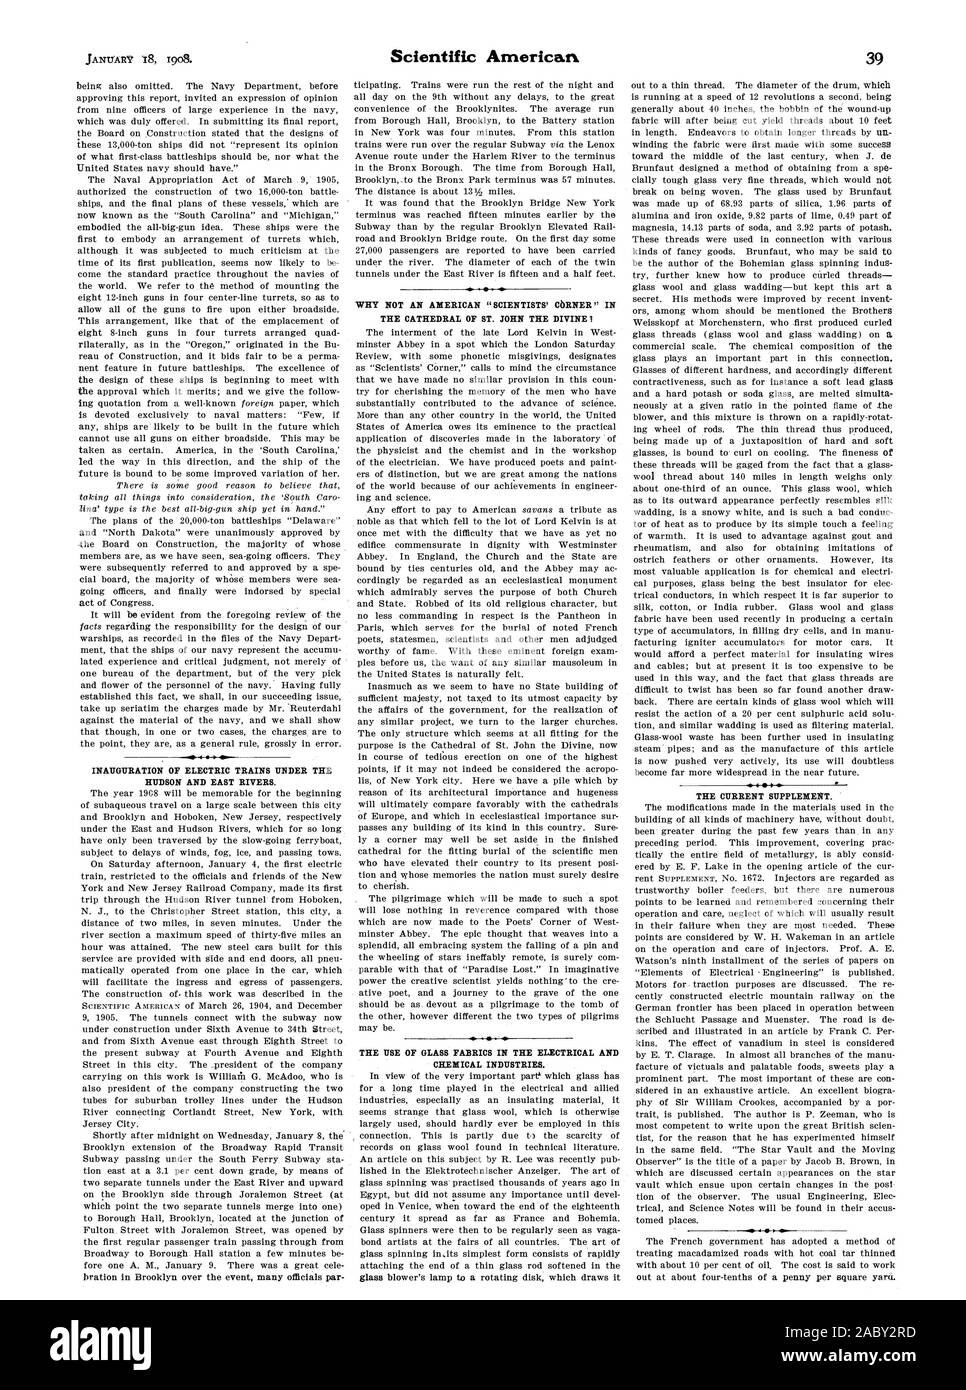 INAUGURATION OF ELECTRIC TRAINS UNDER THE HUDSON AND EAST RIVERS. WHY NOT AN AMERICAN 'SCIENTISTS' CORNER' IN THE USE OF GLASS FABRICS IN THE ELECTRICAL AND CHEXICAL INDUSTRIES. THE CURRENT SUPPLEMENT. 0, scientific american, 1908-01-18 Stock Photo